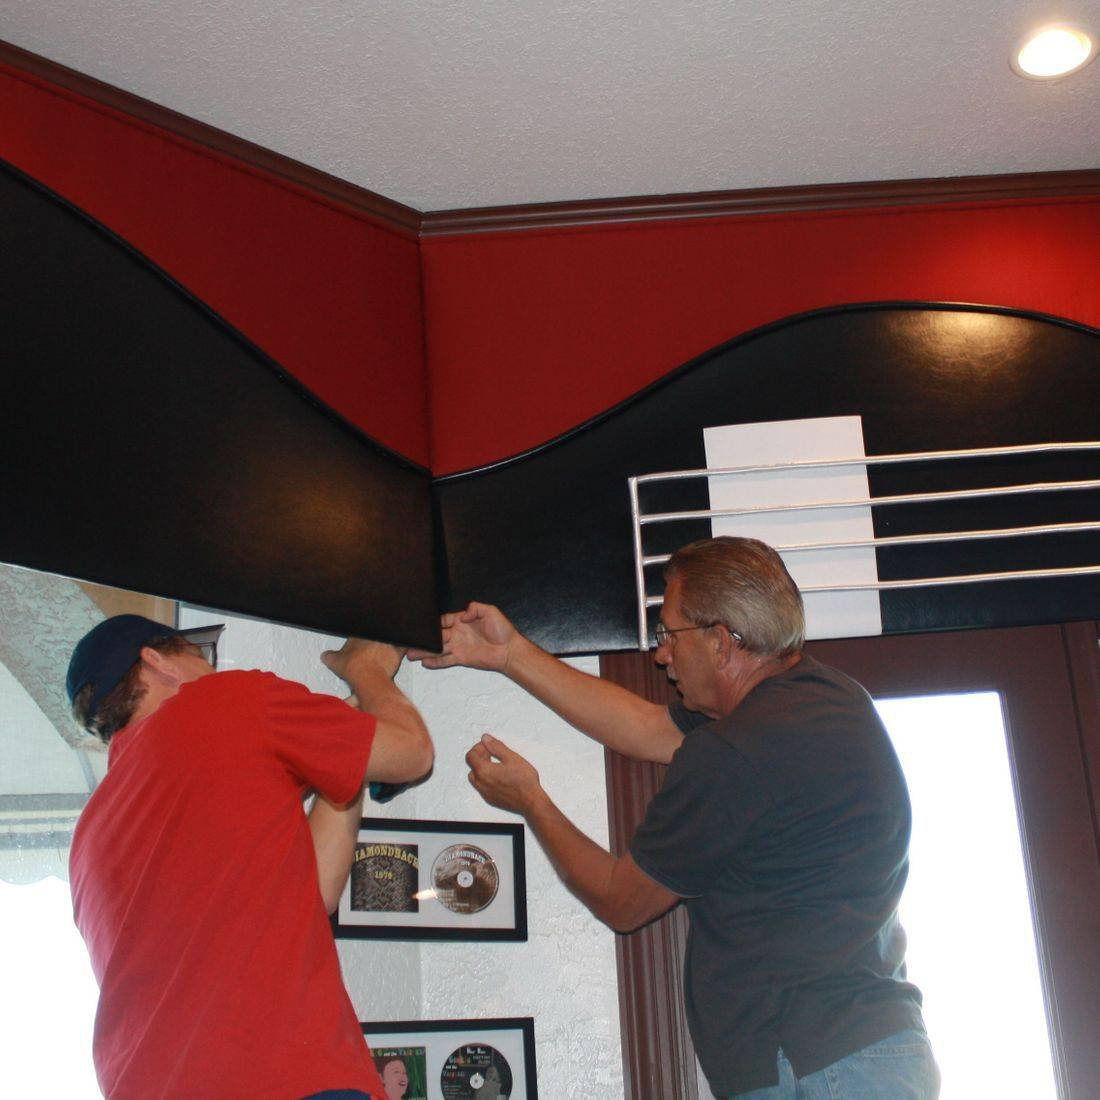 Rock and Roll Guitar Cornice fabricated with leather and custom embroidery  - Music Room Belleair